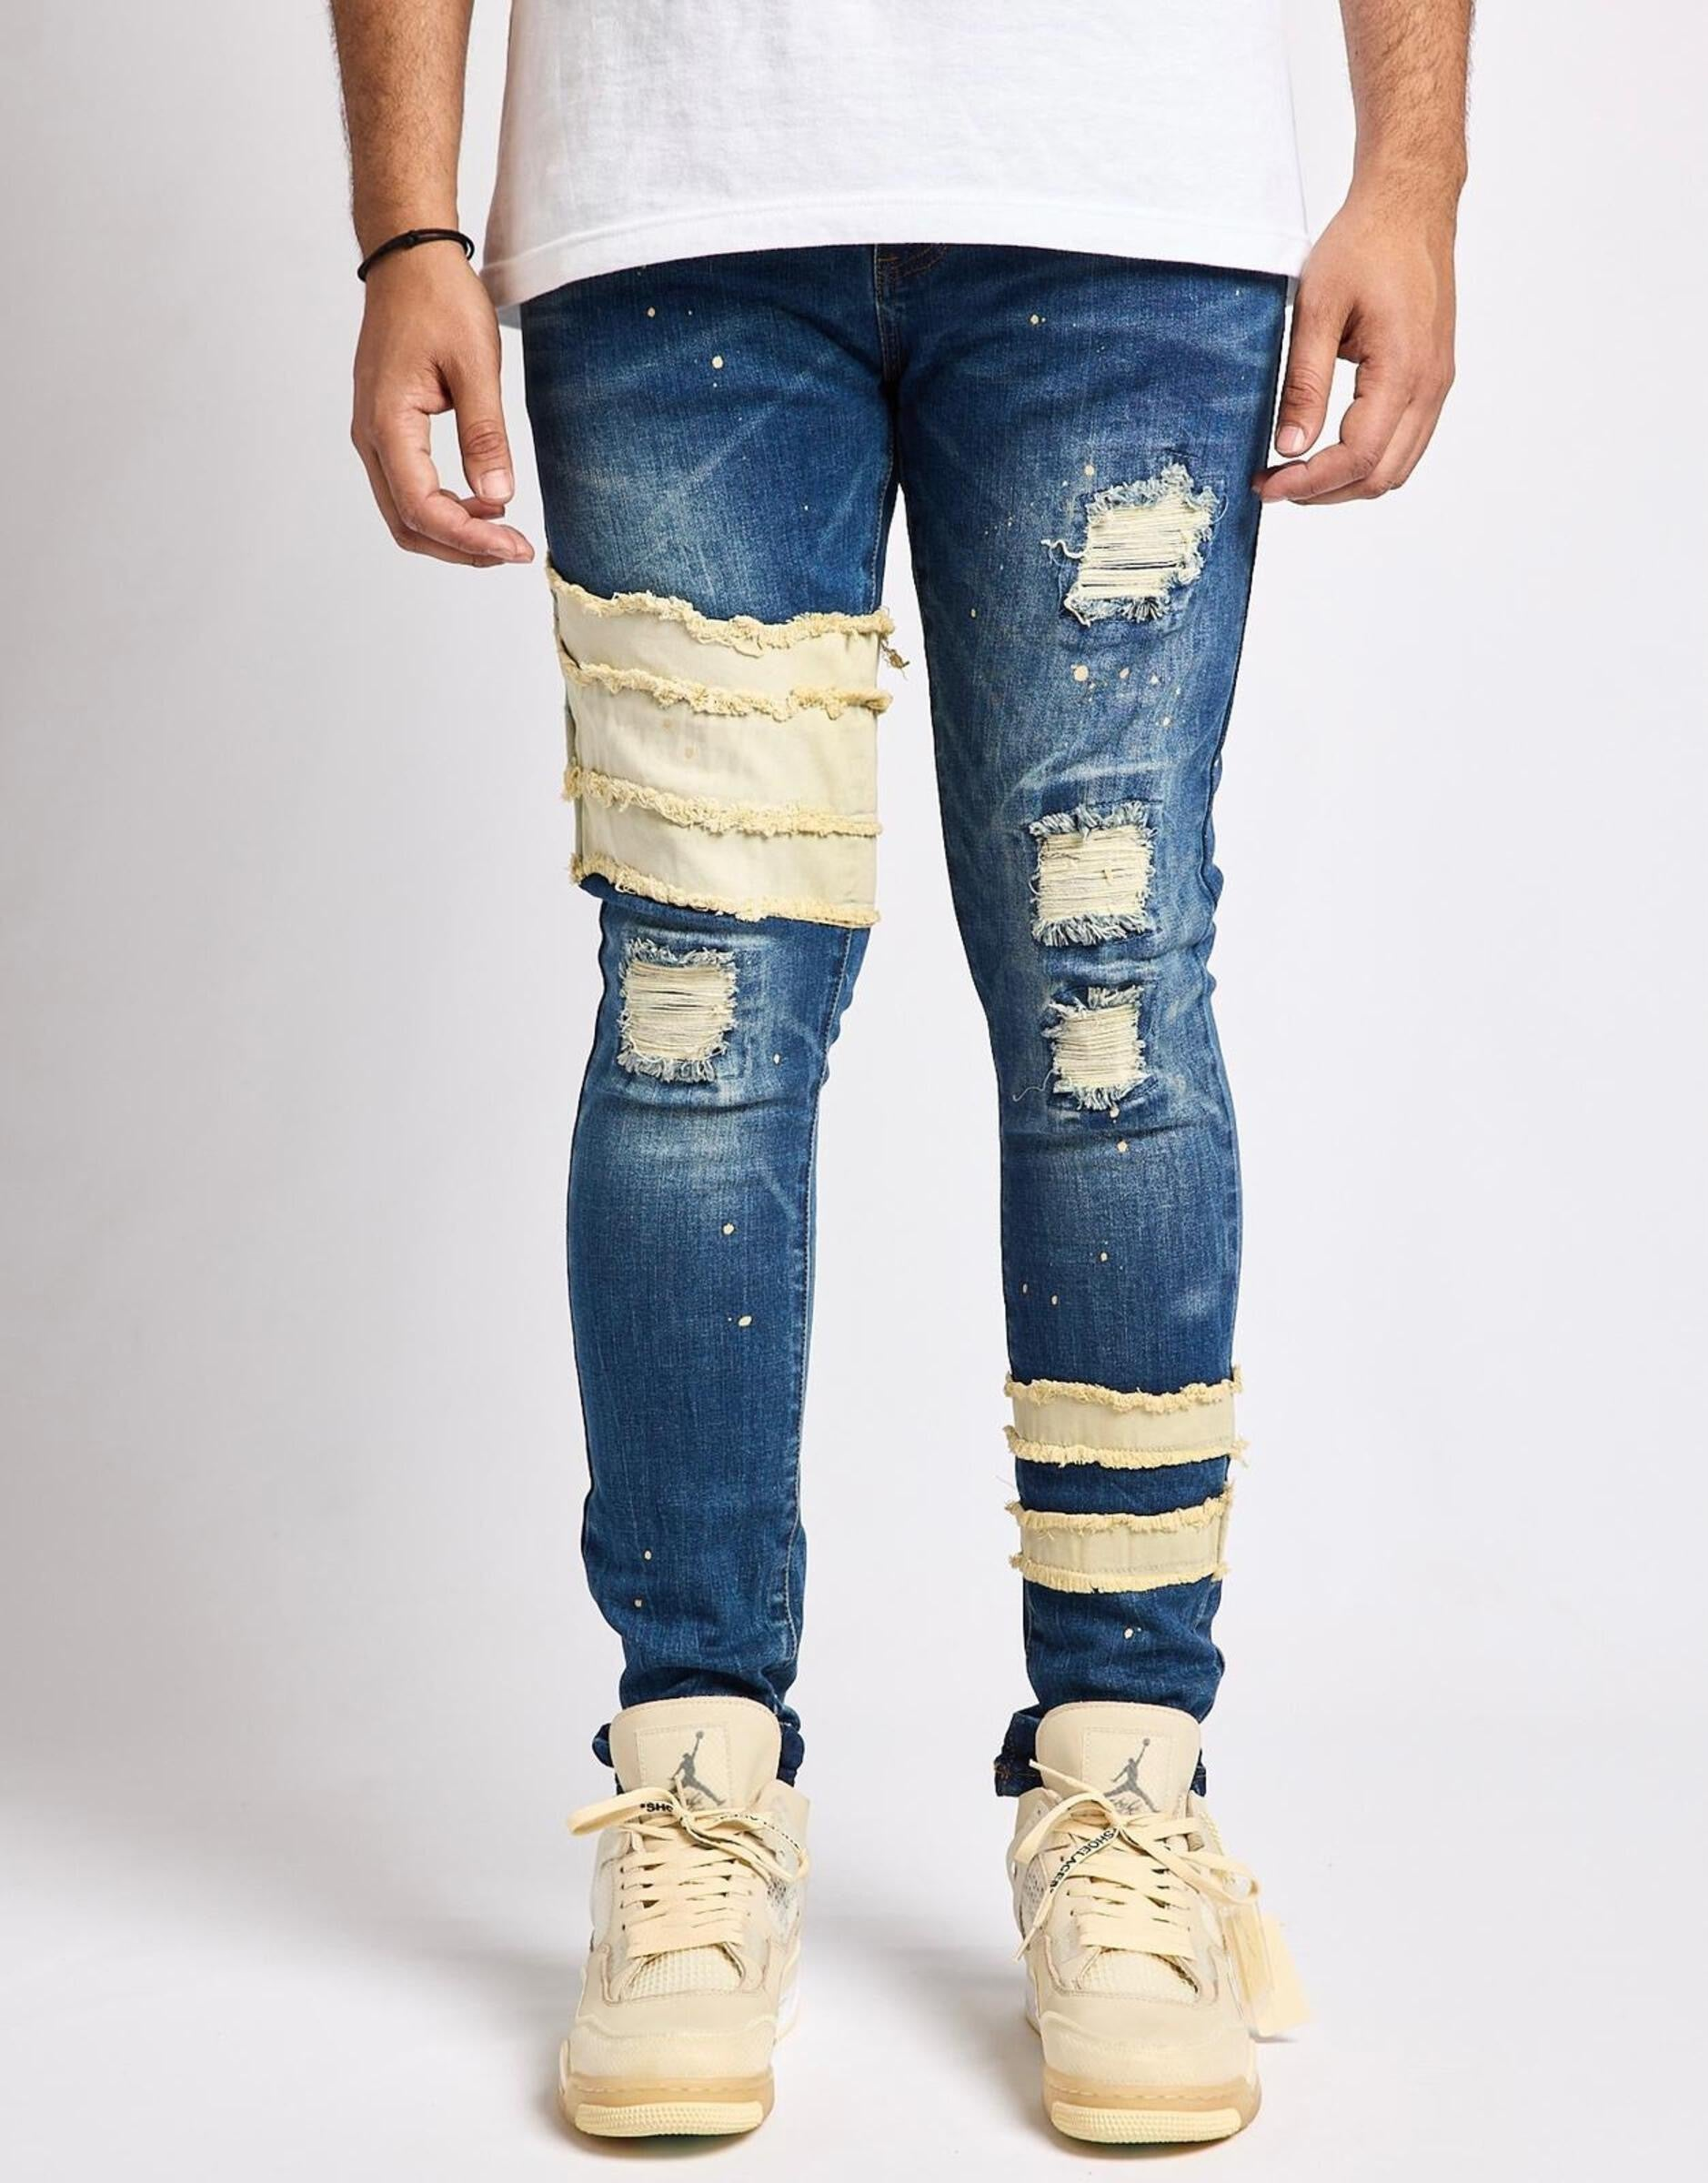 Aden Prem Stretch Denim (Blue) /C3